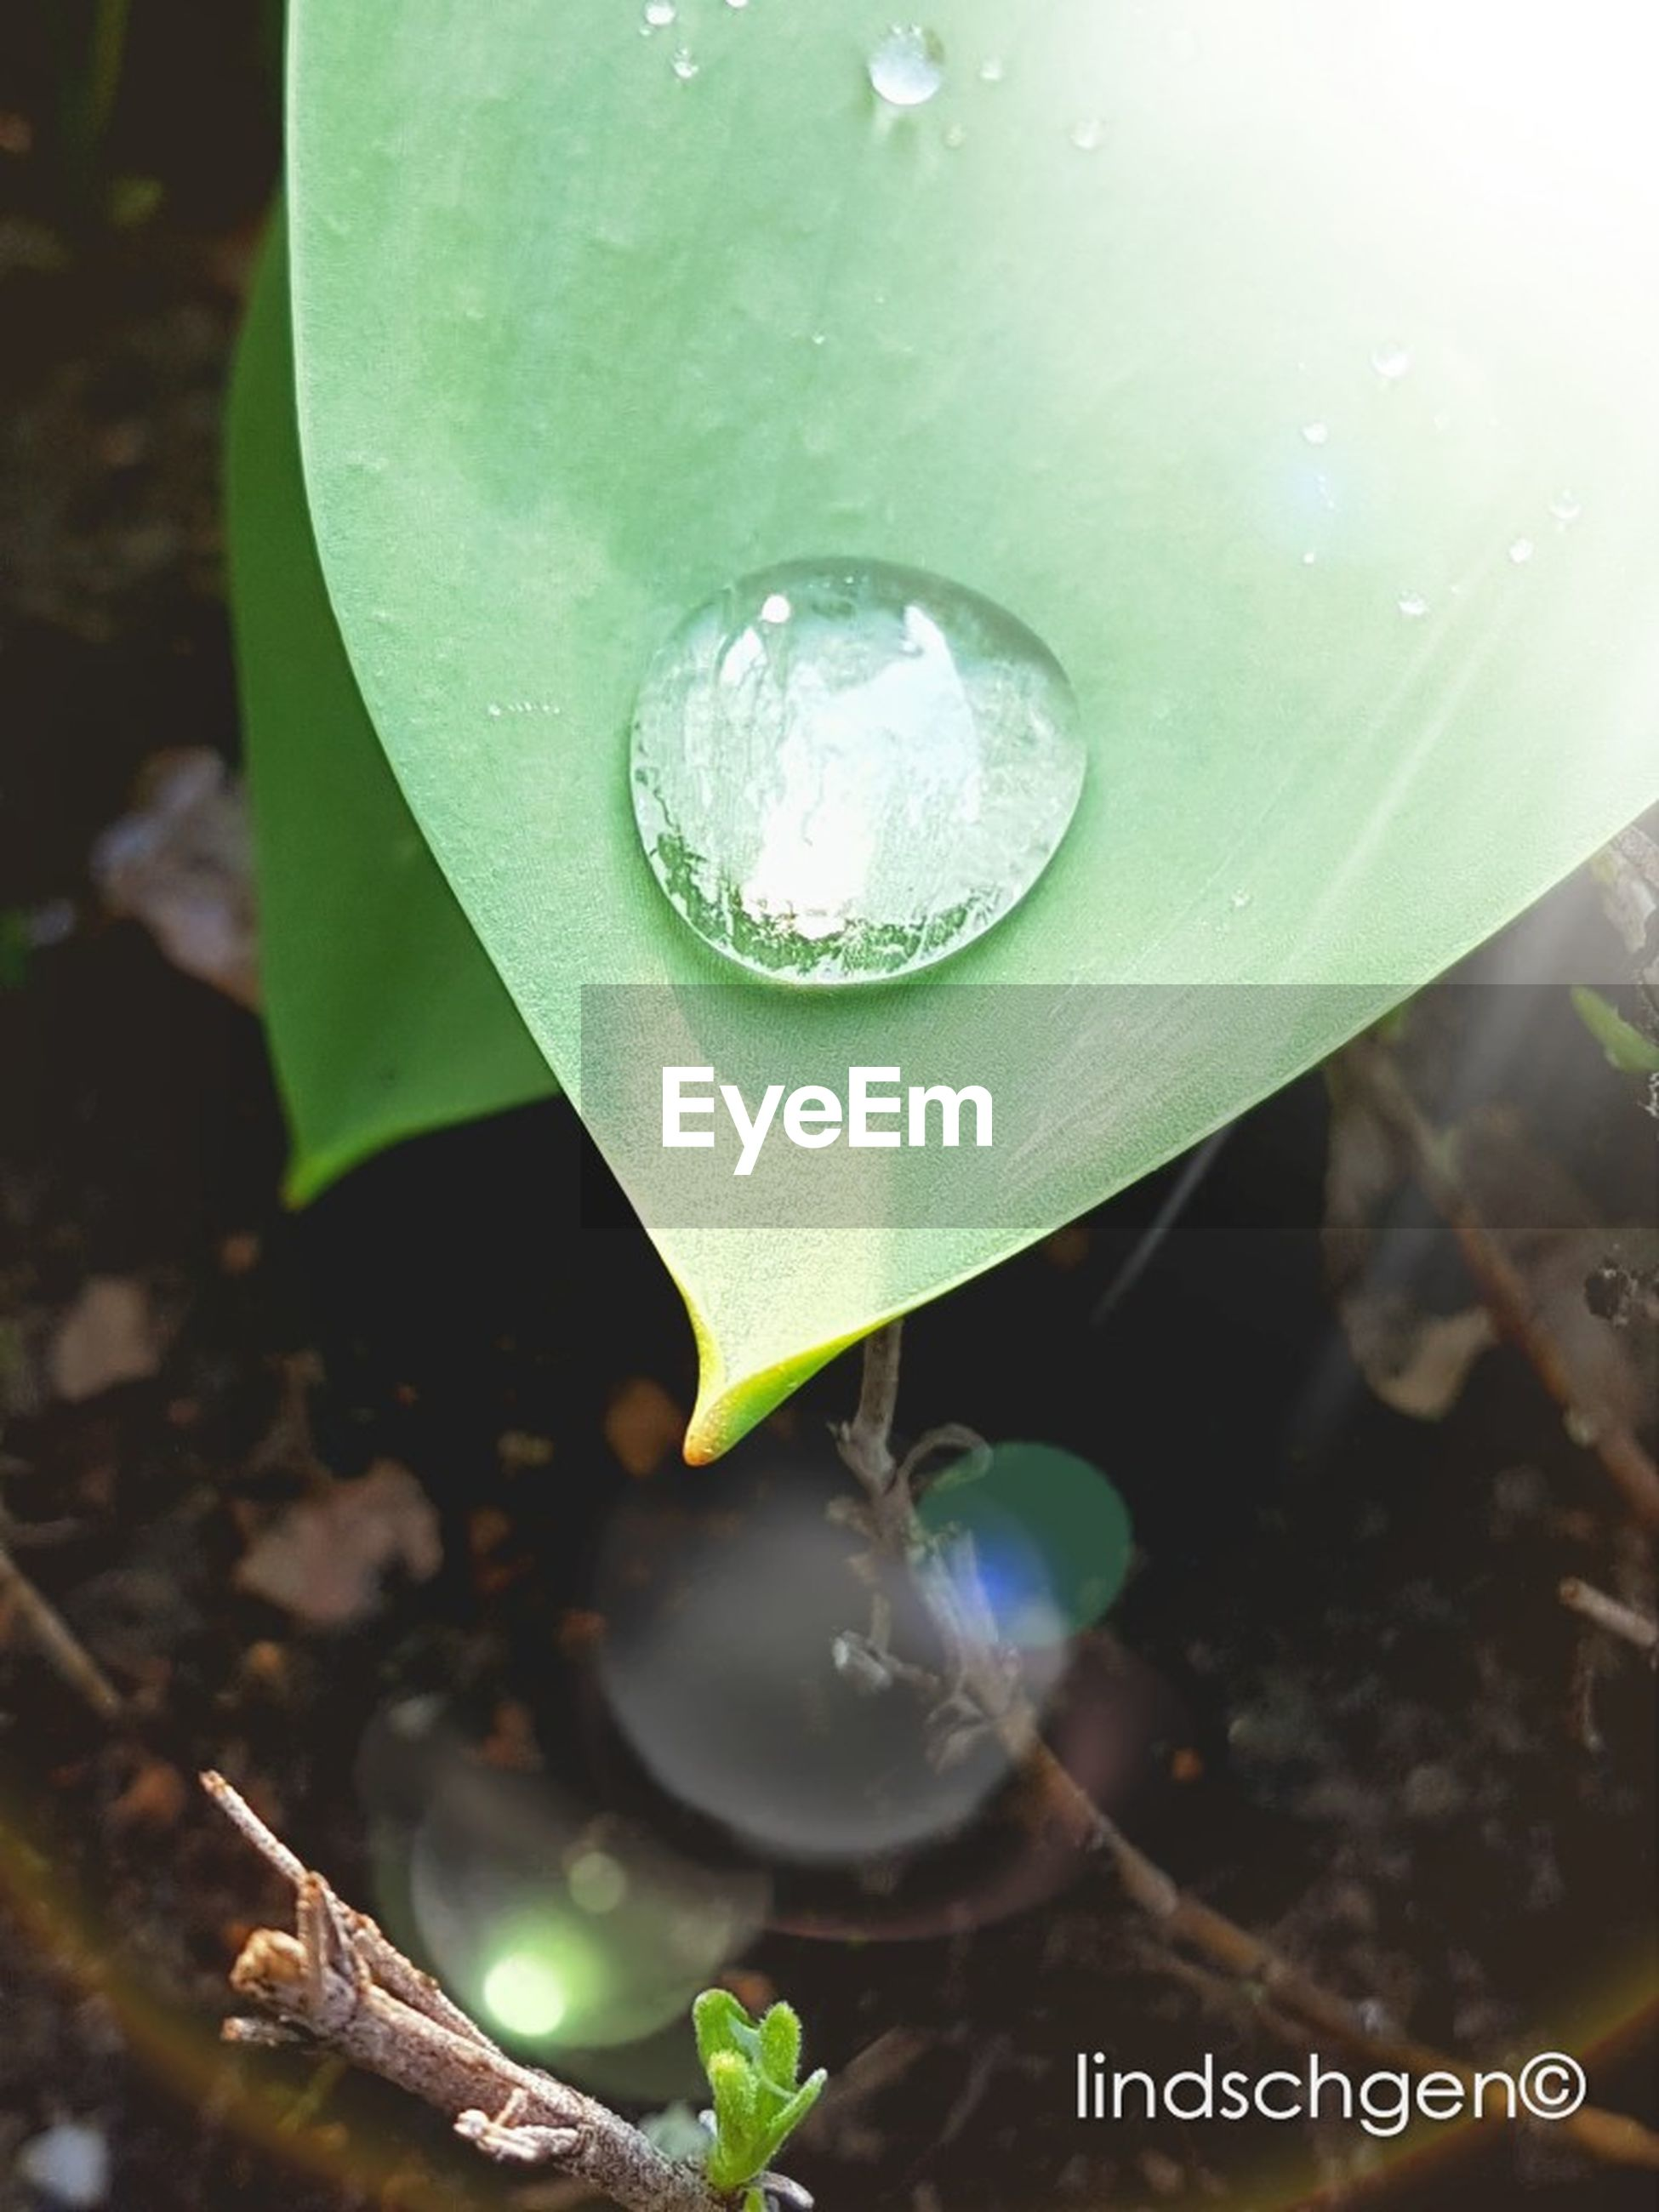 leaf, water, drop, nature, plant, growth, green color, freshness, fragility, close-up, high angle view, wet, beauty in nature, no people, purity, day, new life, floating on water, outdoors, lily pad, raindrop